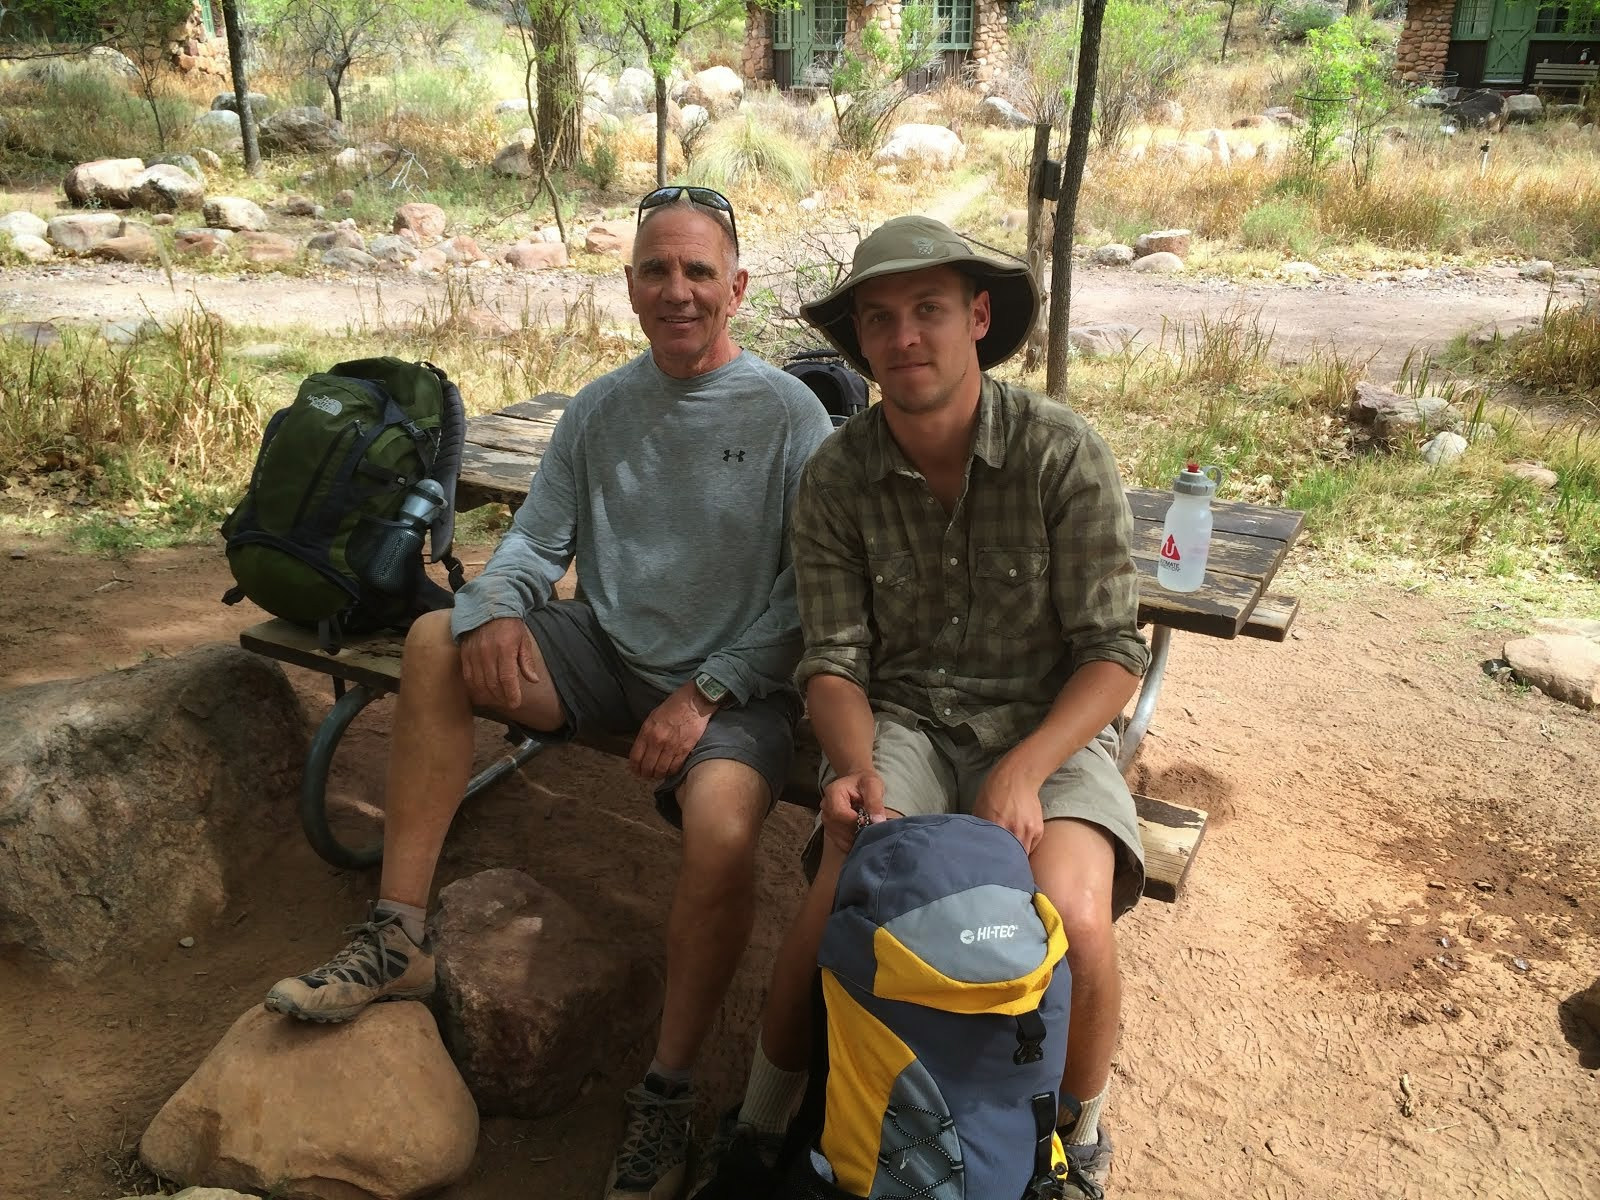 With Danny at Phantom Ranch, March 29, 2014